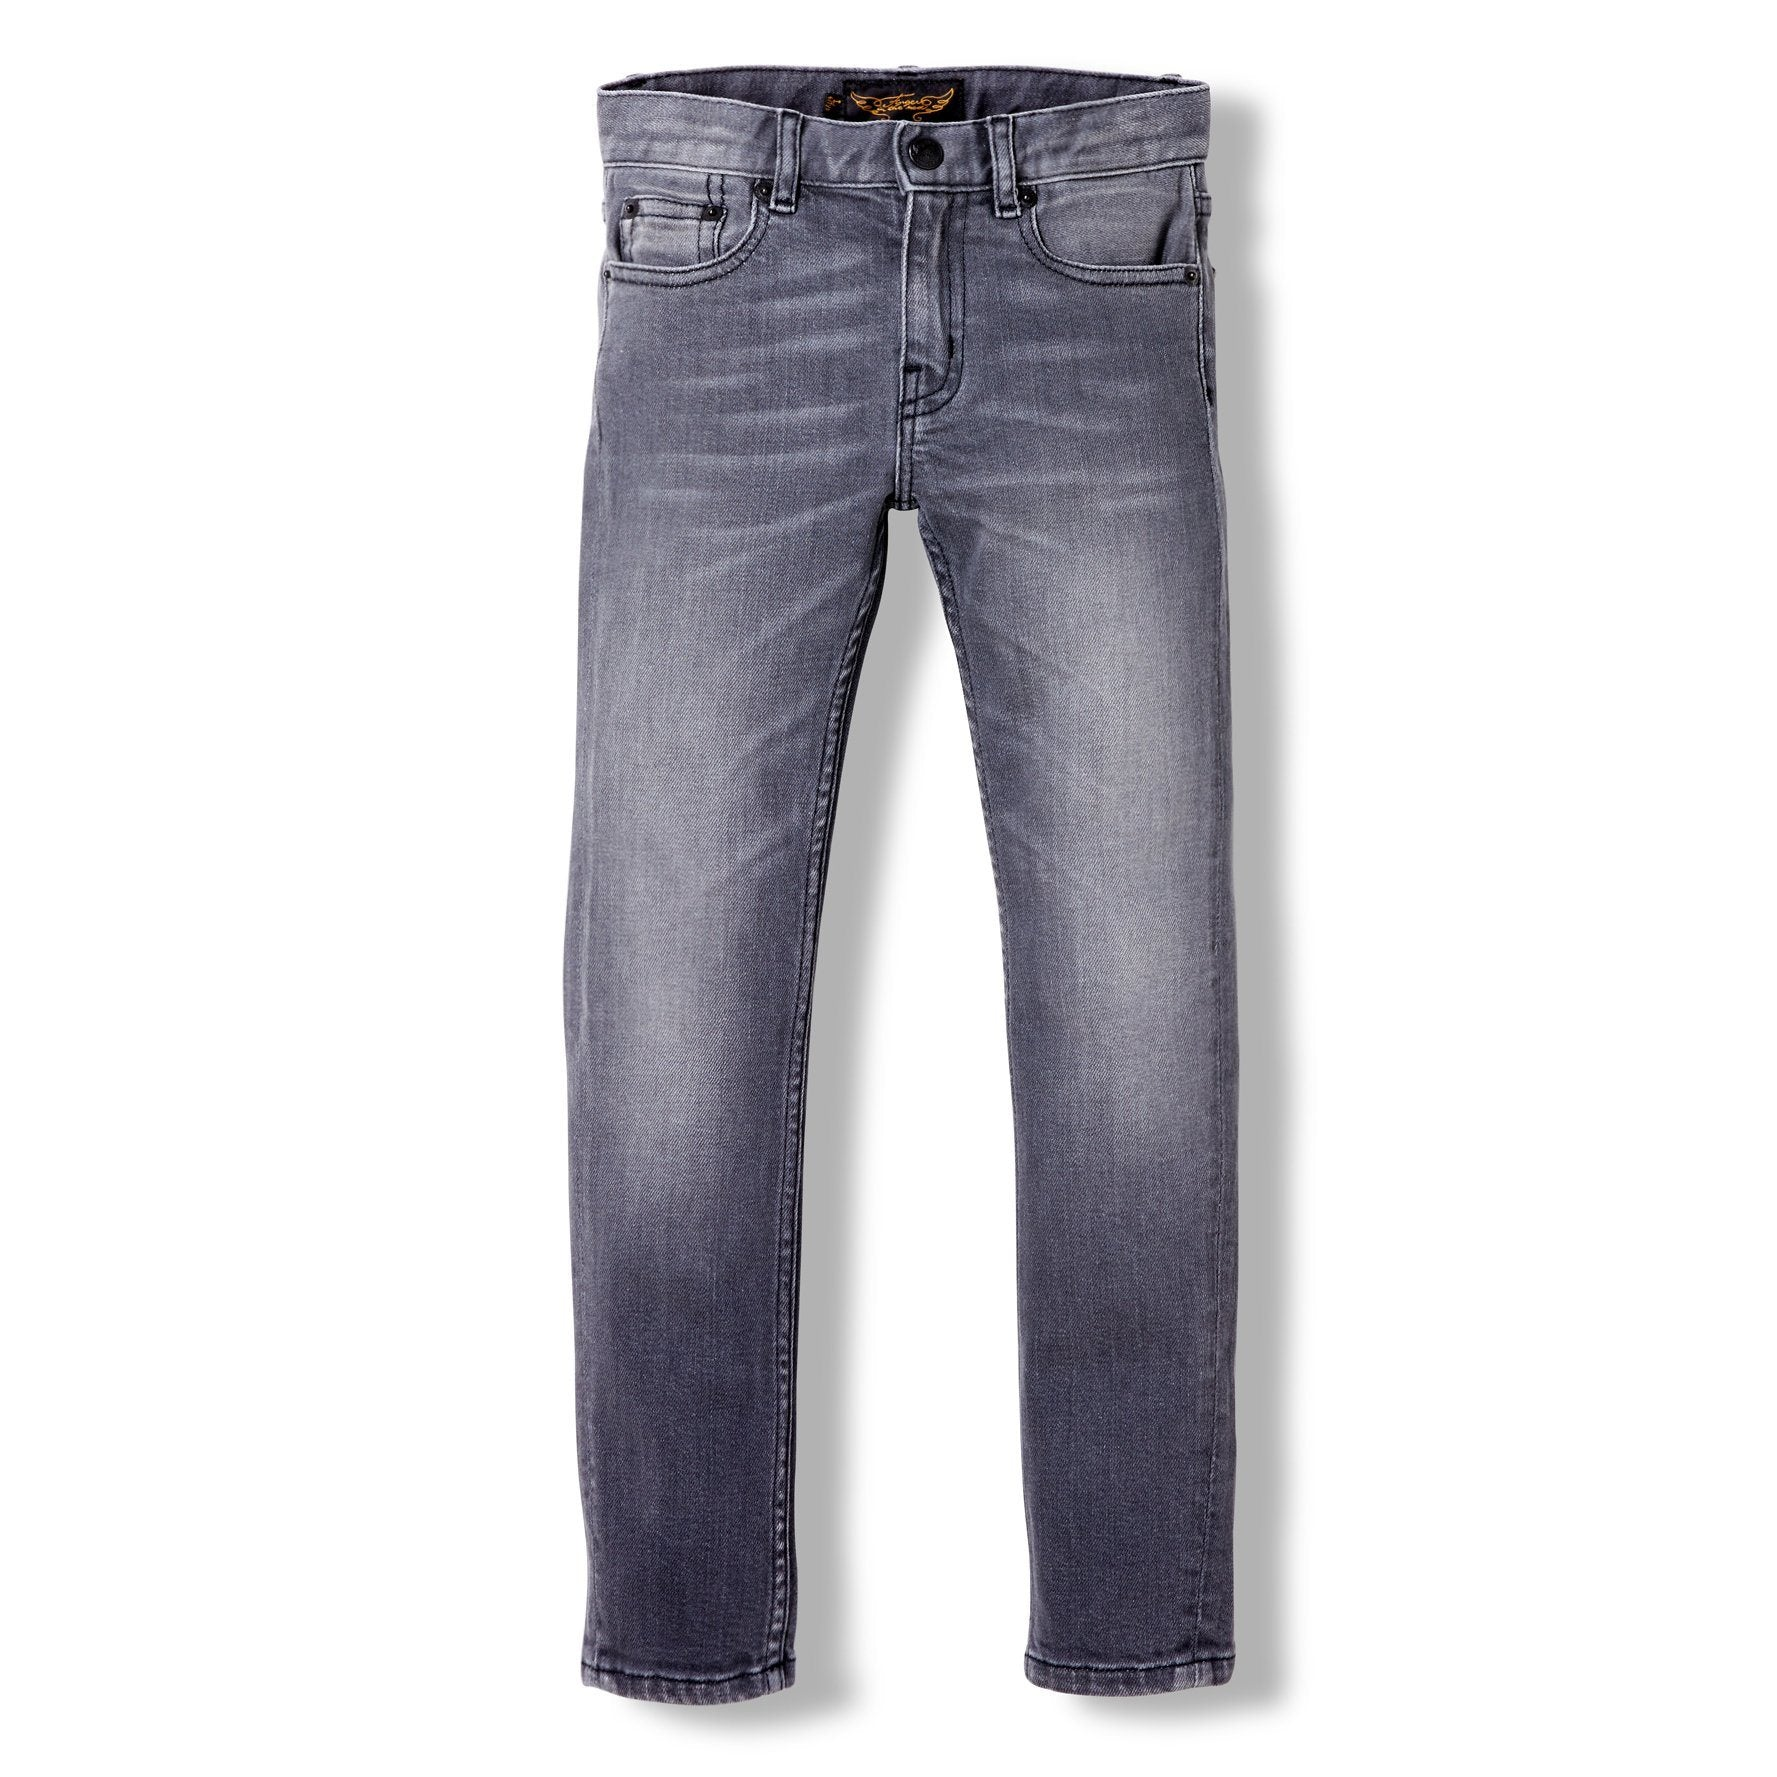 Icon Slim Fit Jeans Grey Denim Finger in the nose | Zirkuss